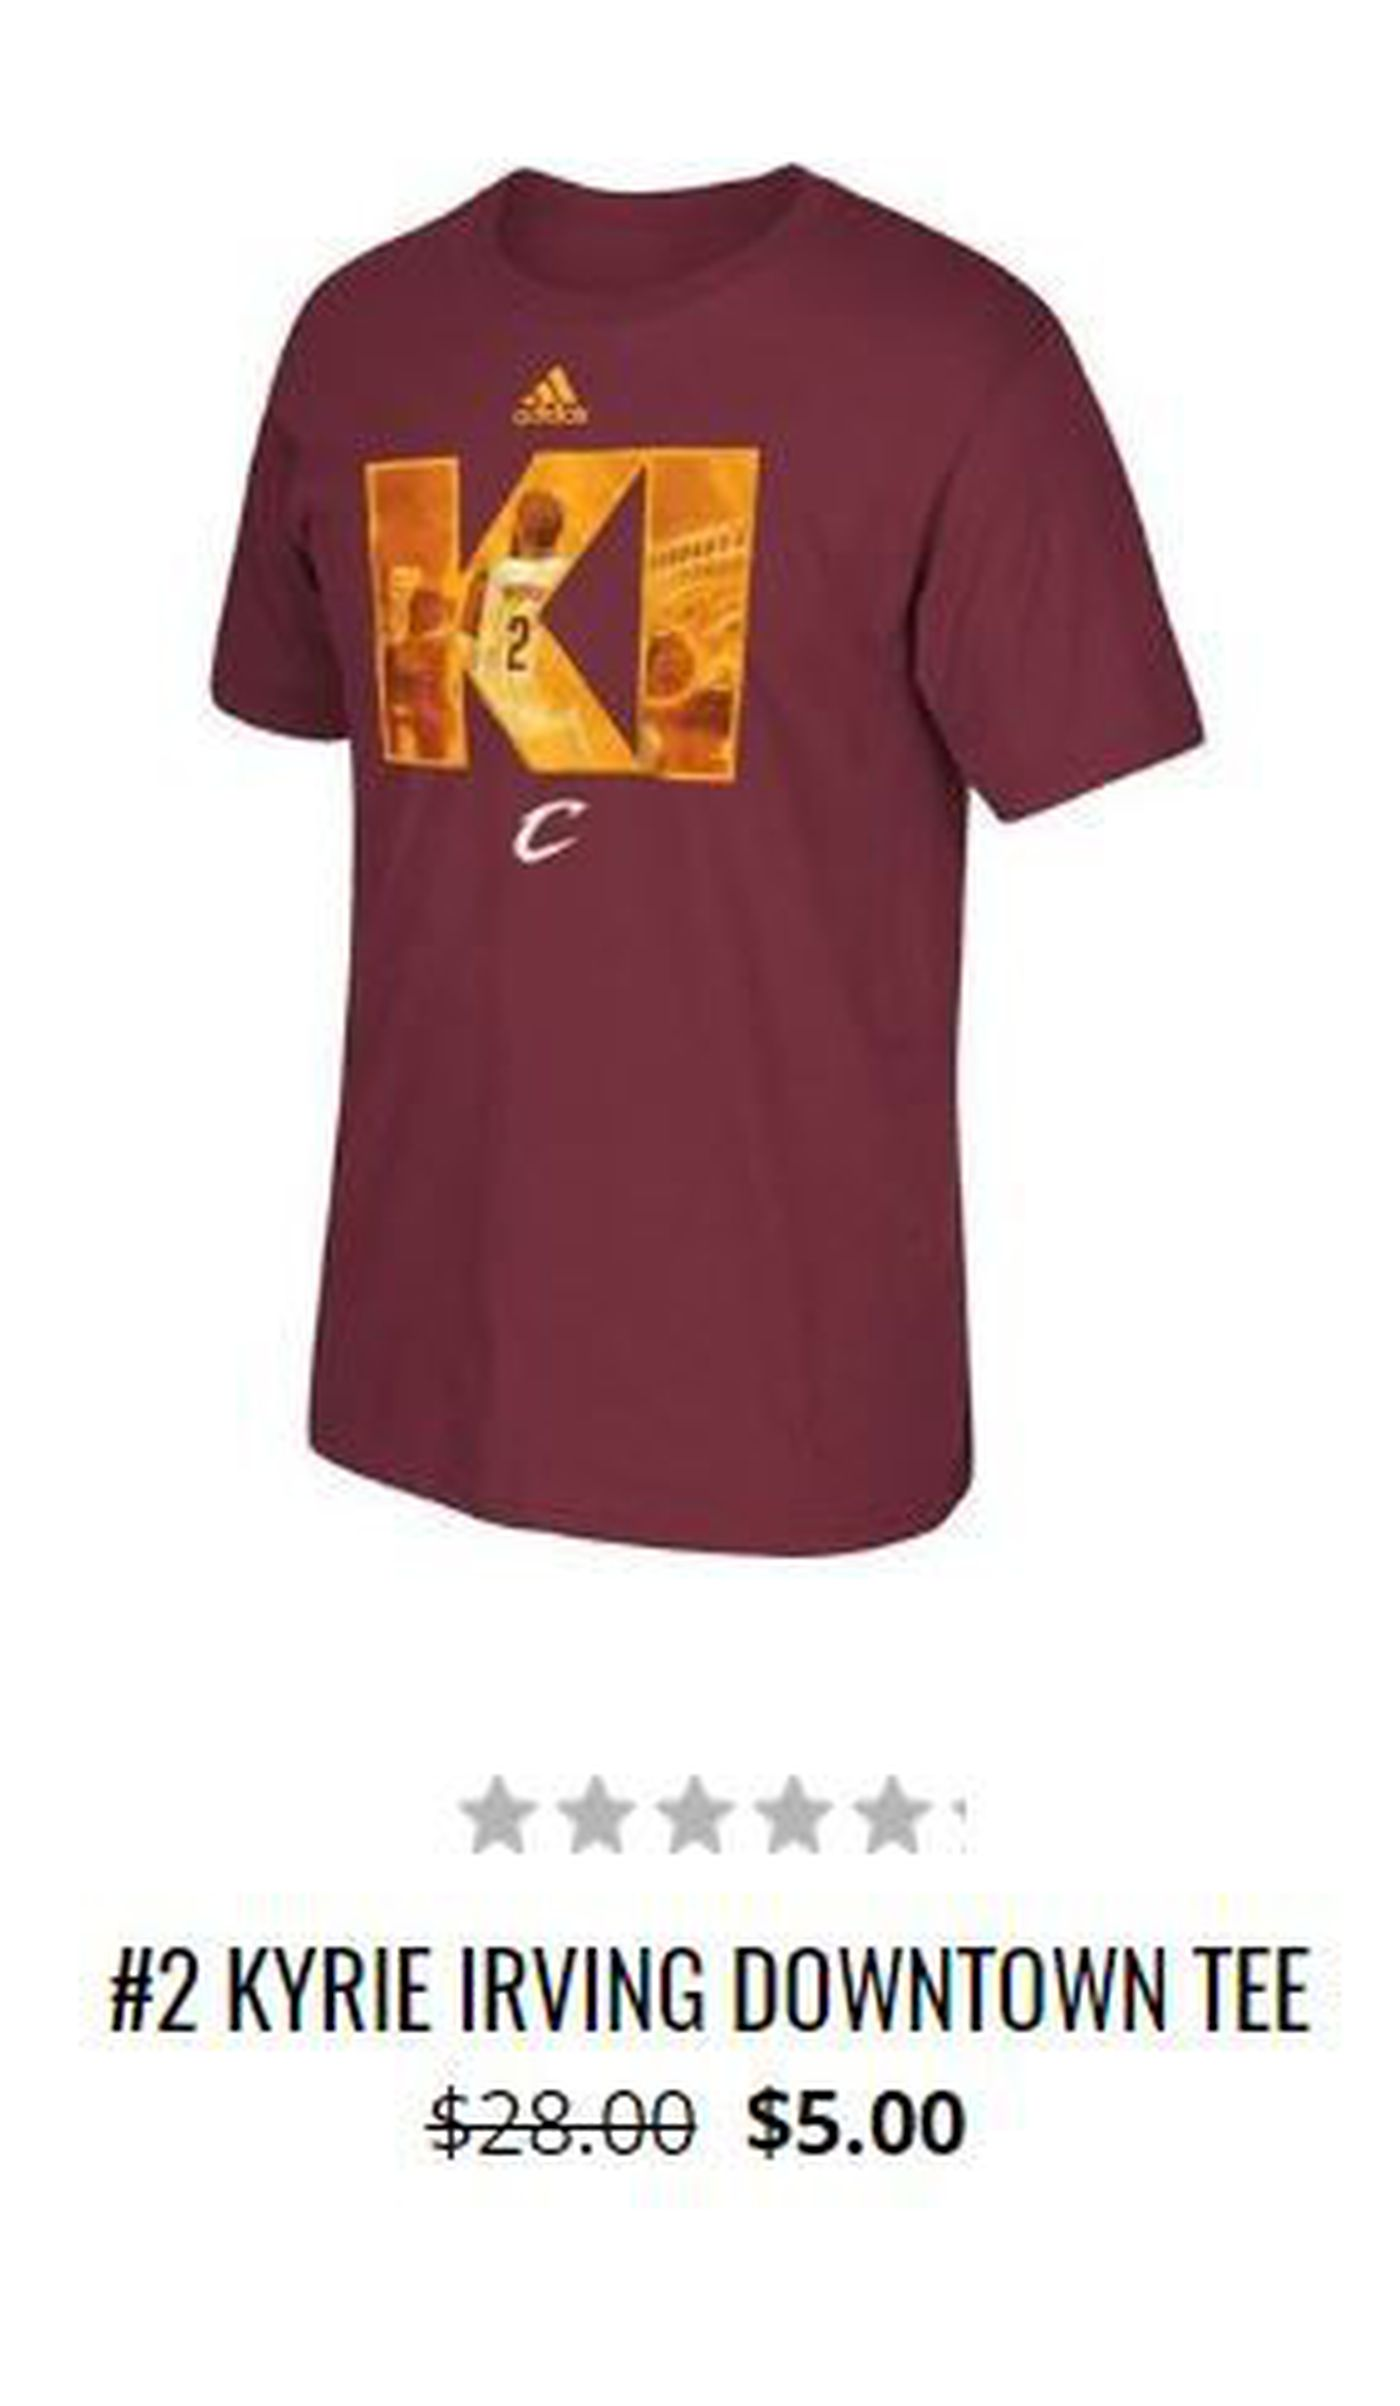 low priced 27ae3 bae09 Kyrie Irving merchandise selling for just dollars at ...